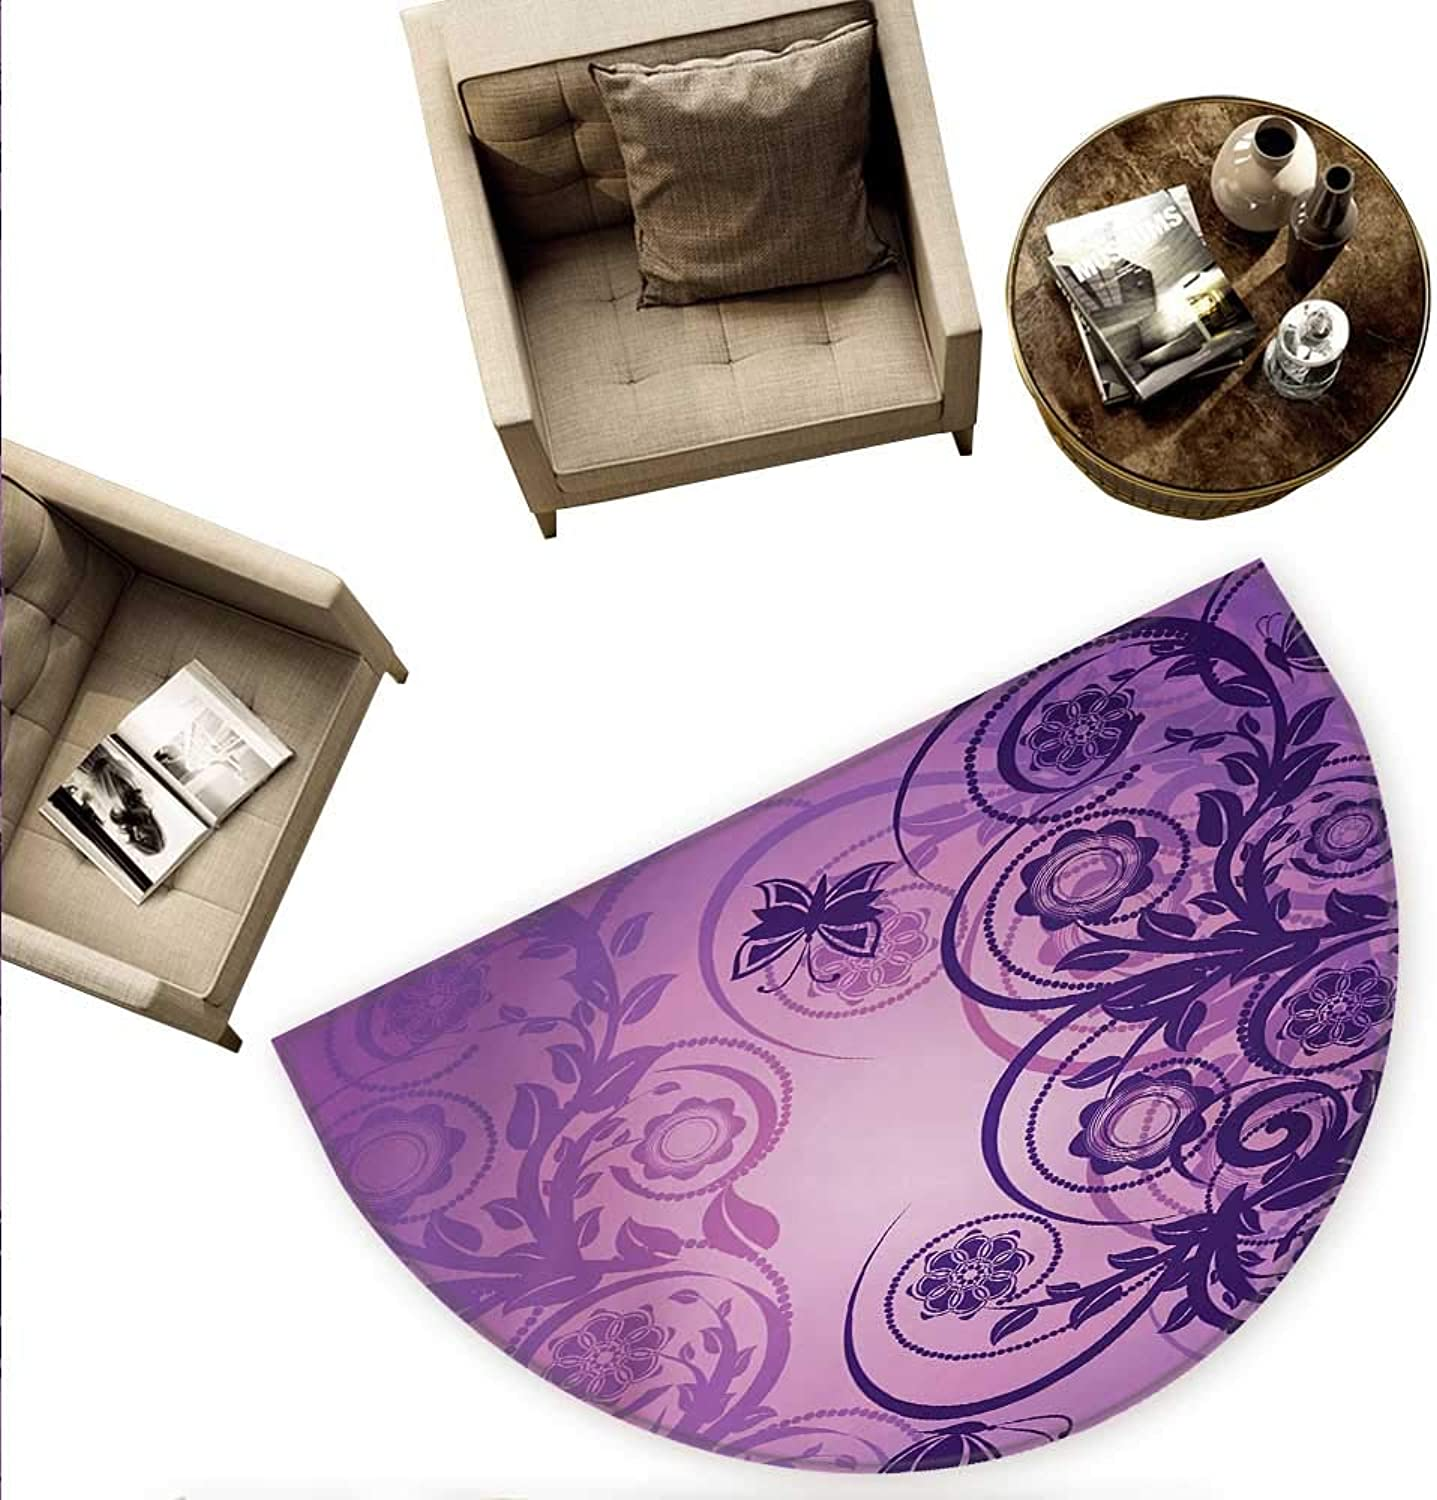 Purple Semicircular Cushion Curved Flower Branches with Butterflies Nature Spring Season Inspirations Entry Door Mat H 78.7  xD 118.1  Dark Purple purple